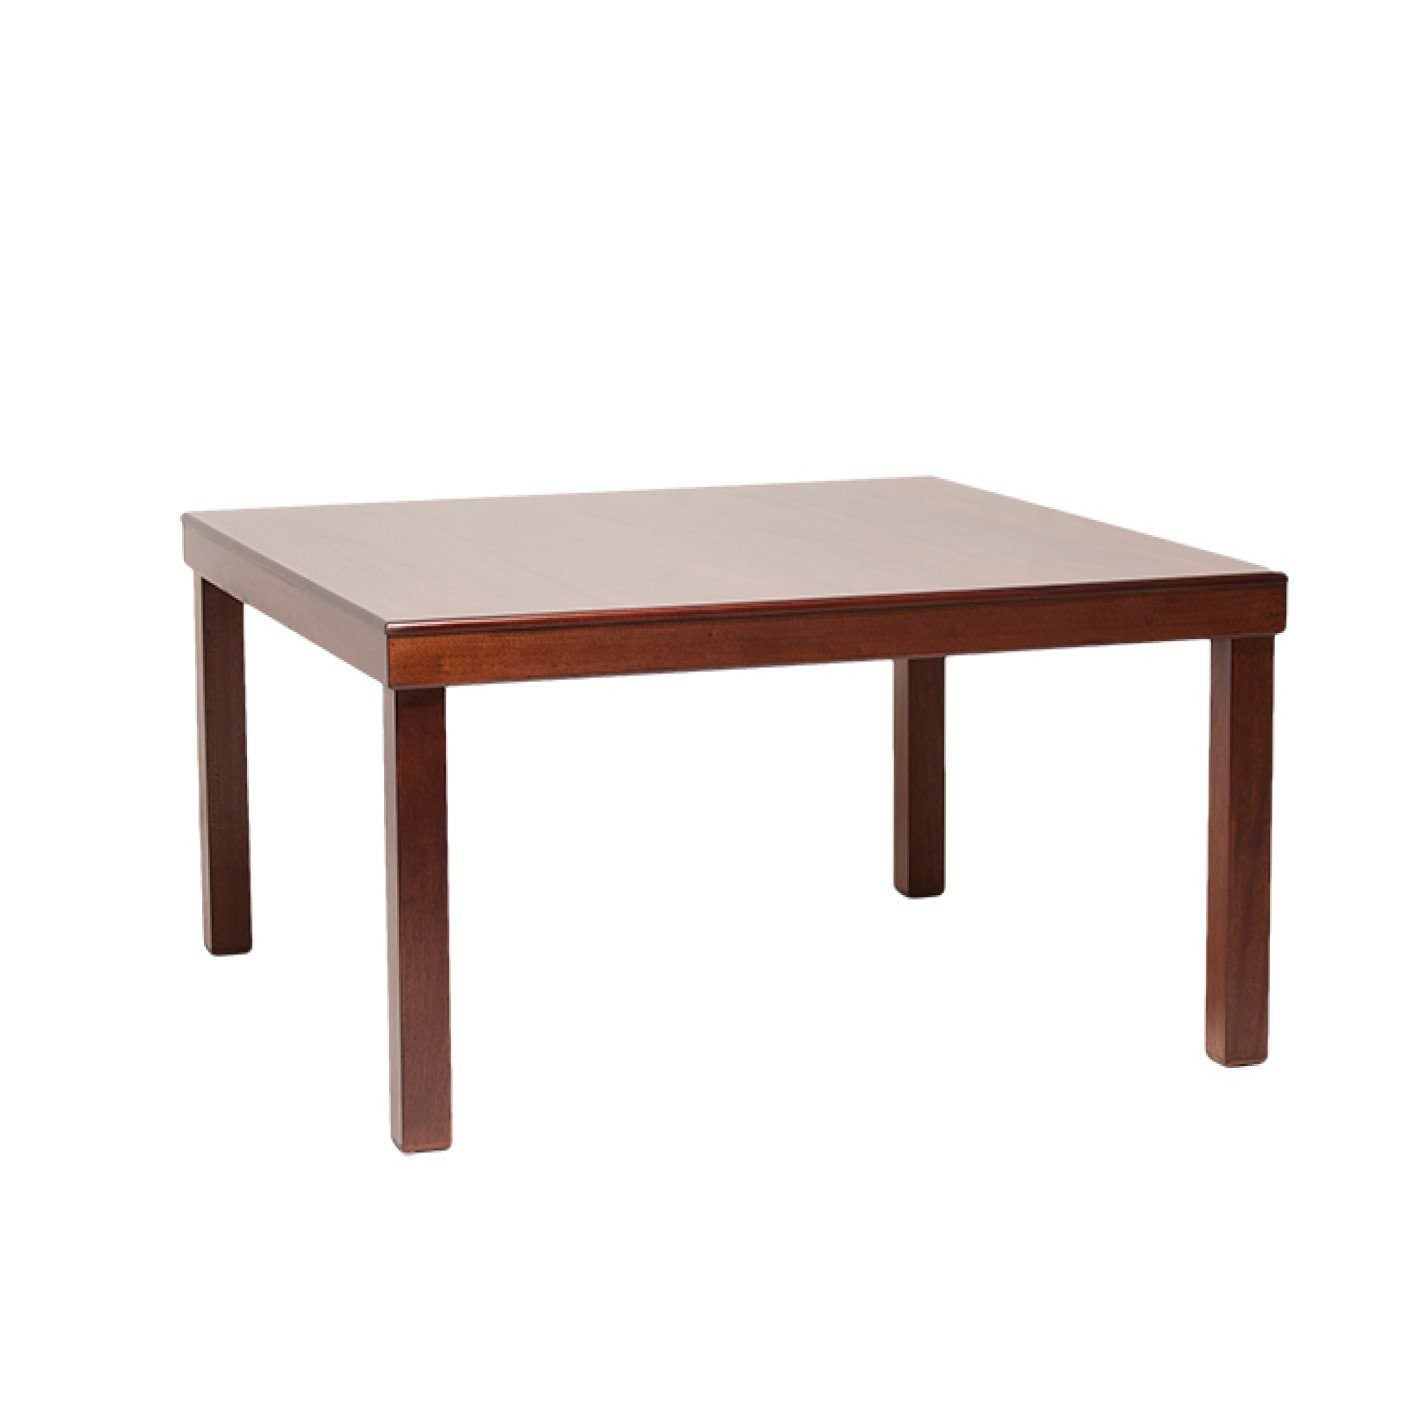 URBAN-DINING TABLE-1550/1550-WALNUT